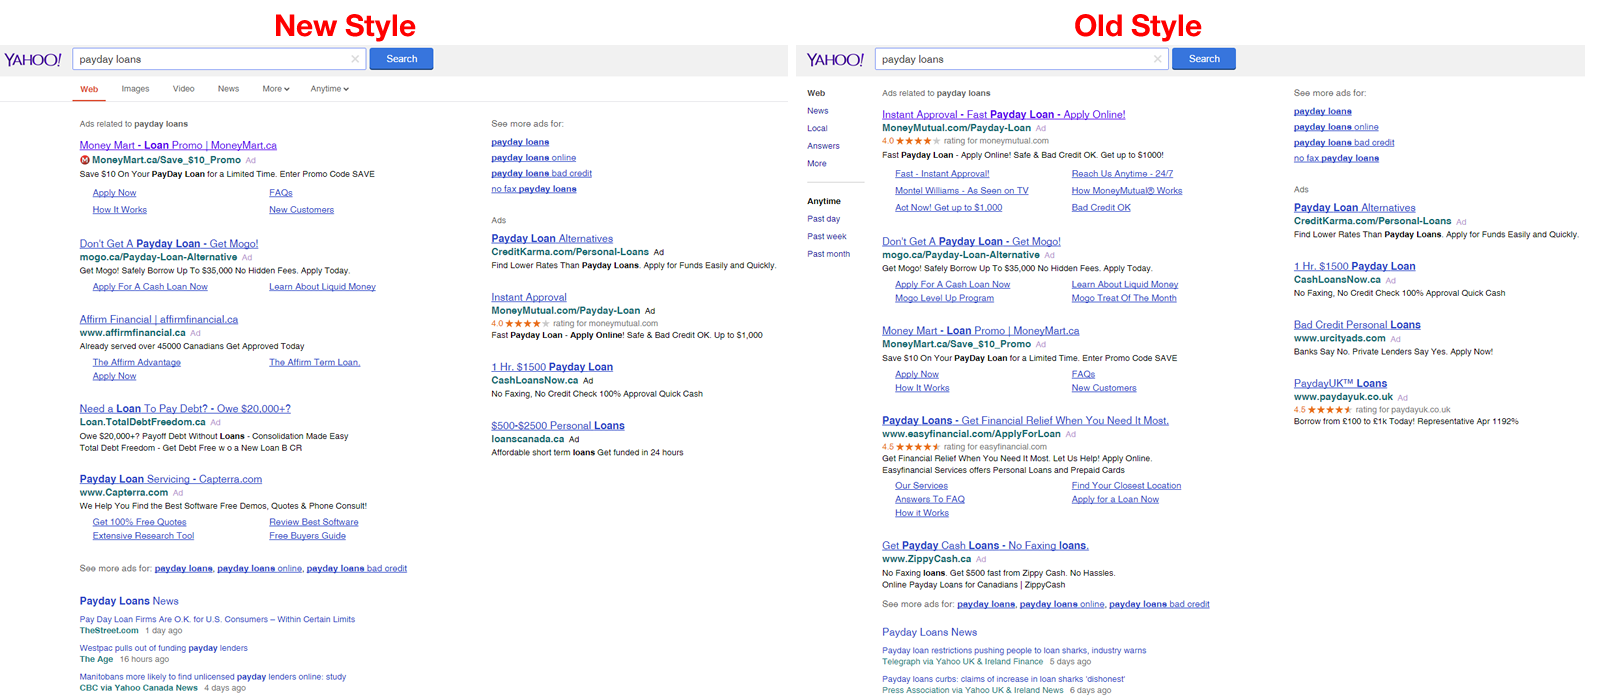 yahoo testing google interface compare